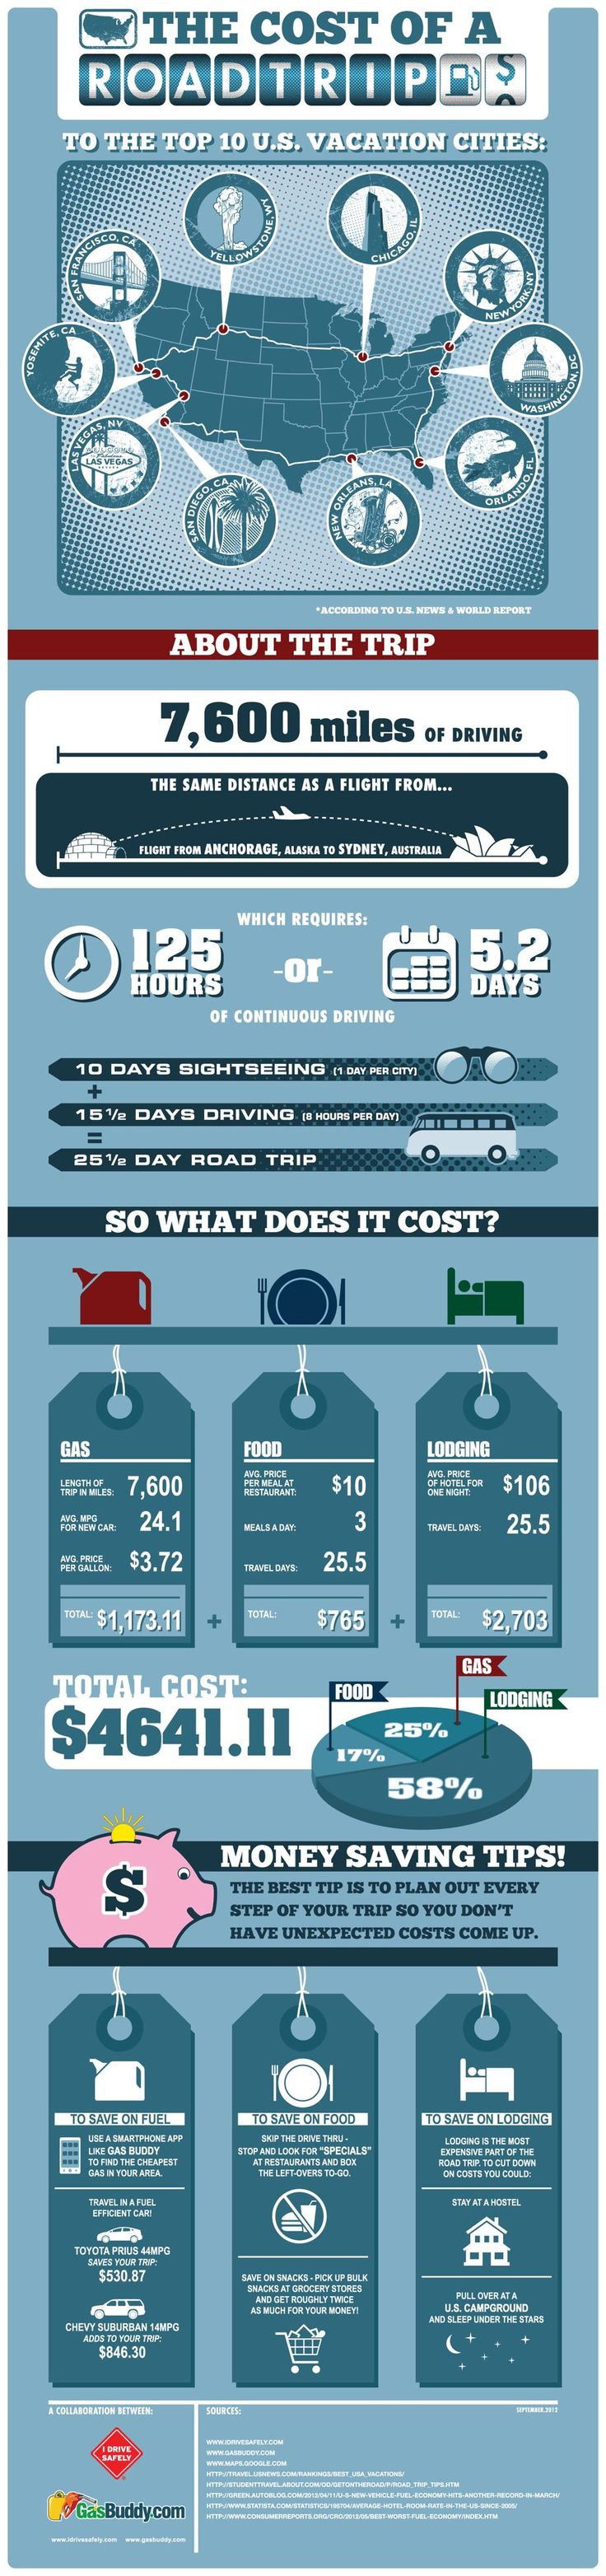 The cost of a great american roadtrip infographic